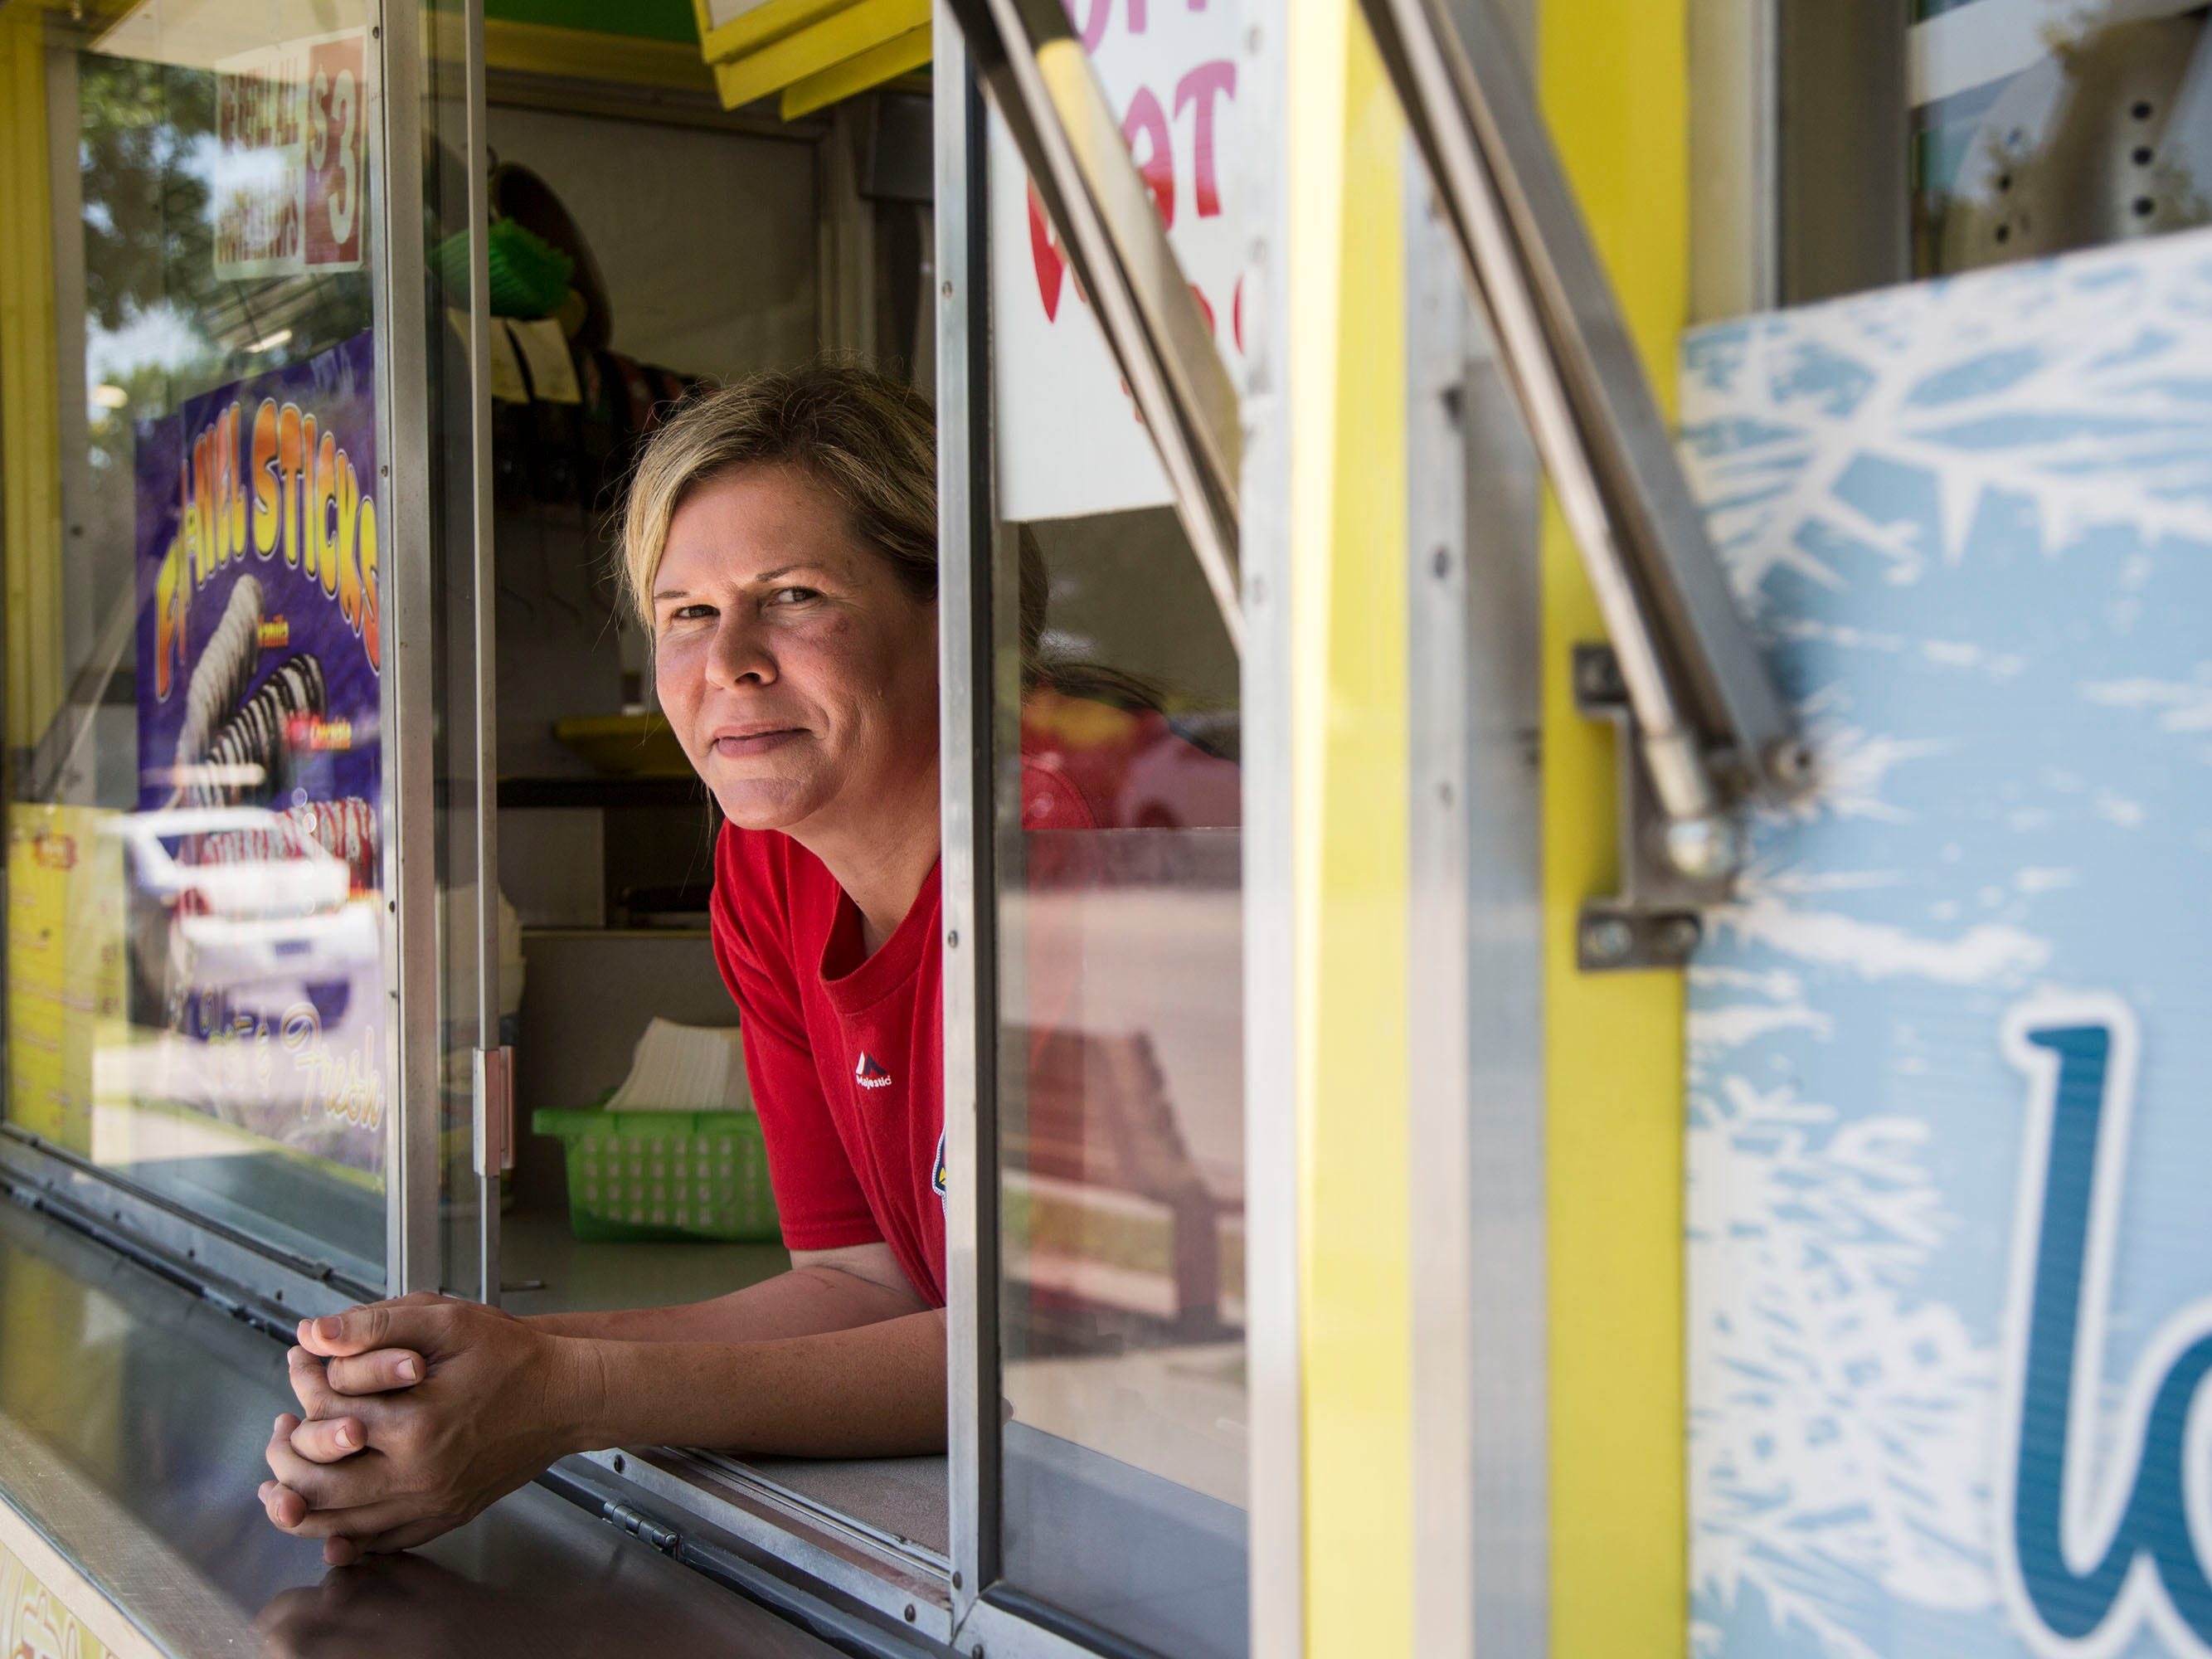 Carrying on her family's tradition, Jada Smith, owner of Jada Concessions, is back at the Iowa State Fair as a concessionaire, selling funnel cakes, for the first time since her parents, one of the first to bring funnel cake to the fair, were murdered there in 1996. She stands inside her trailer on Wednesday, Aug. 8, 2018, the day before the fair begins.